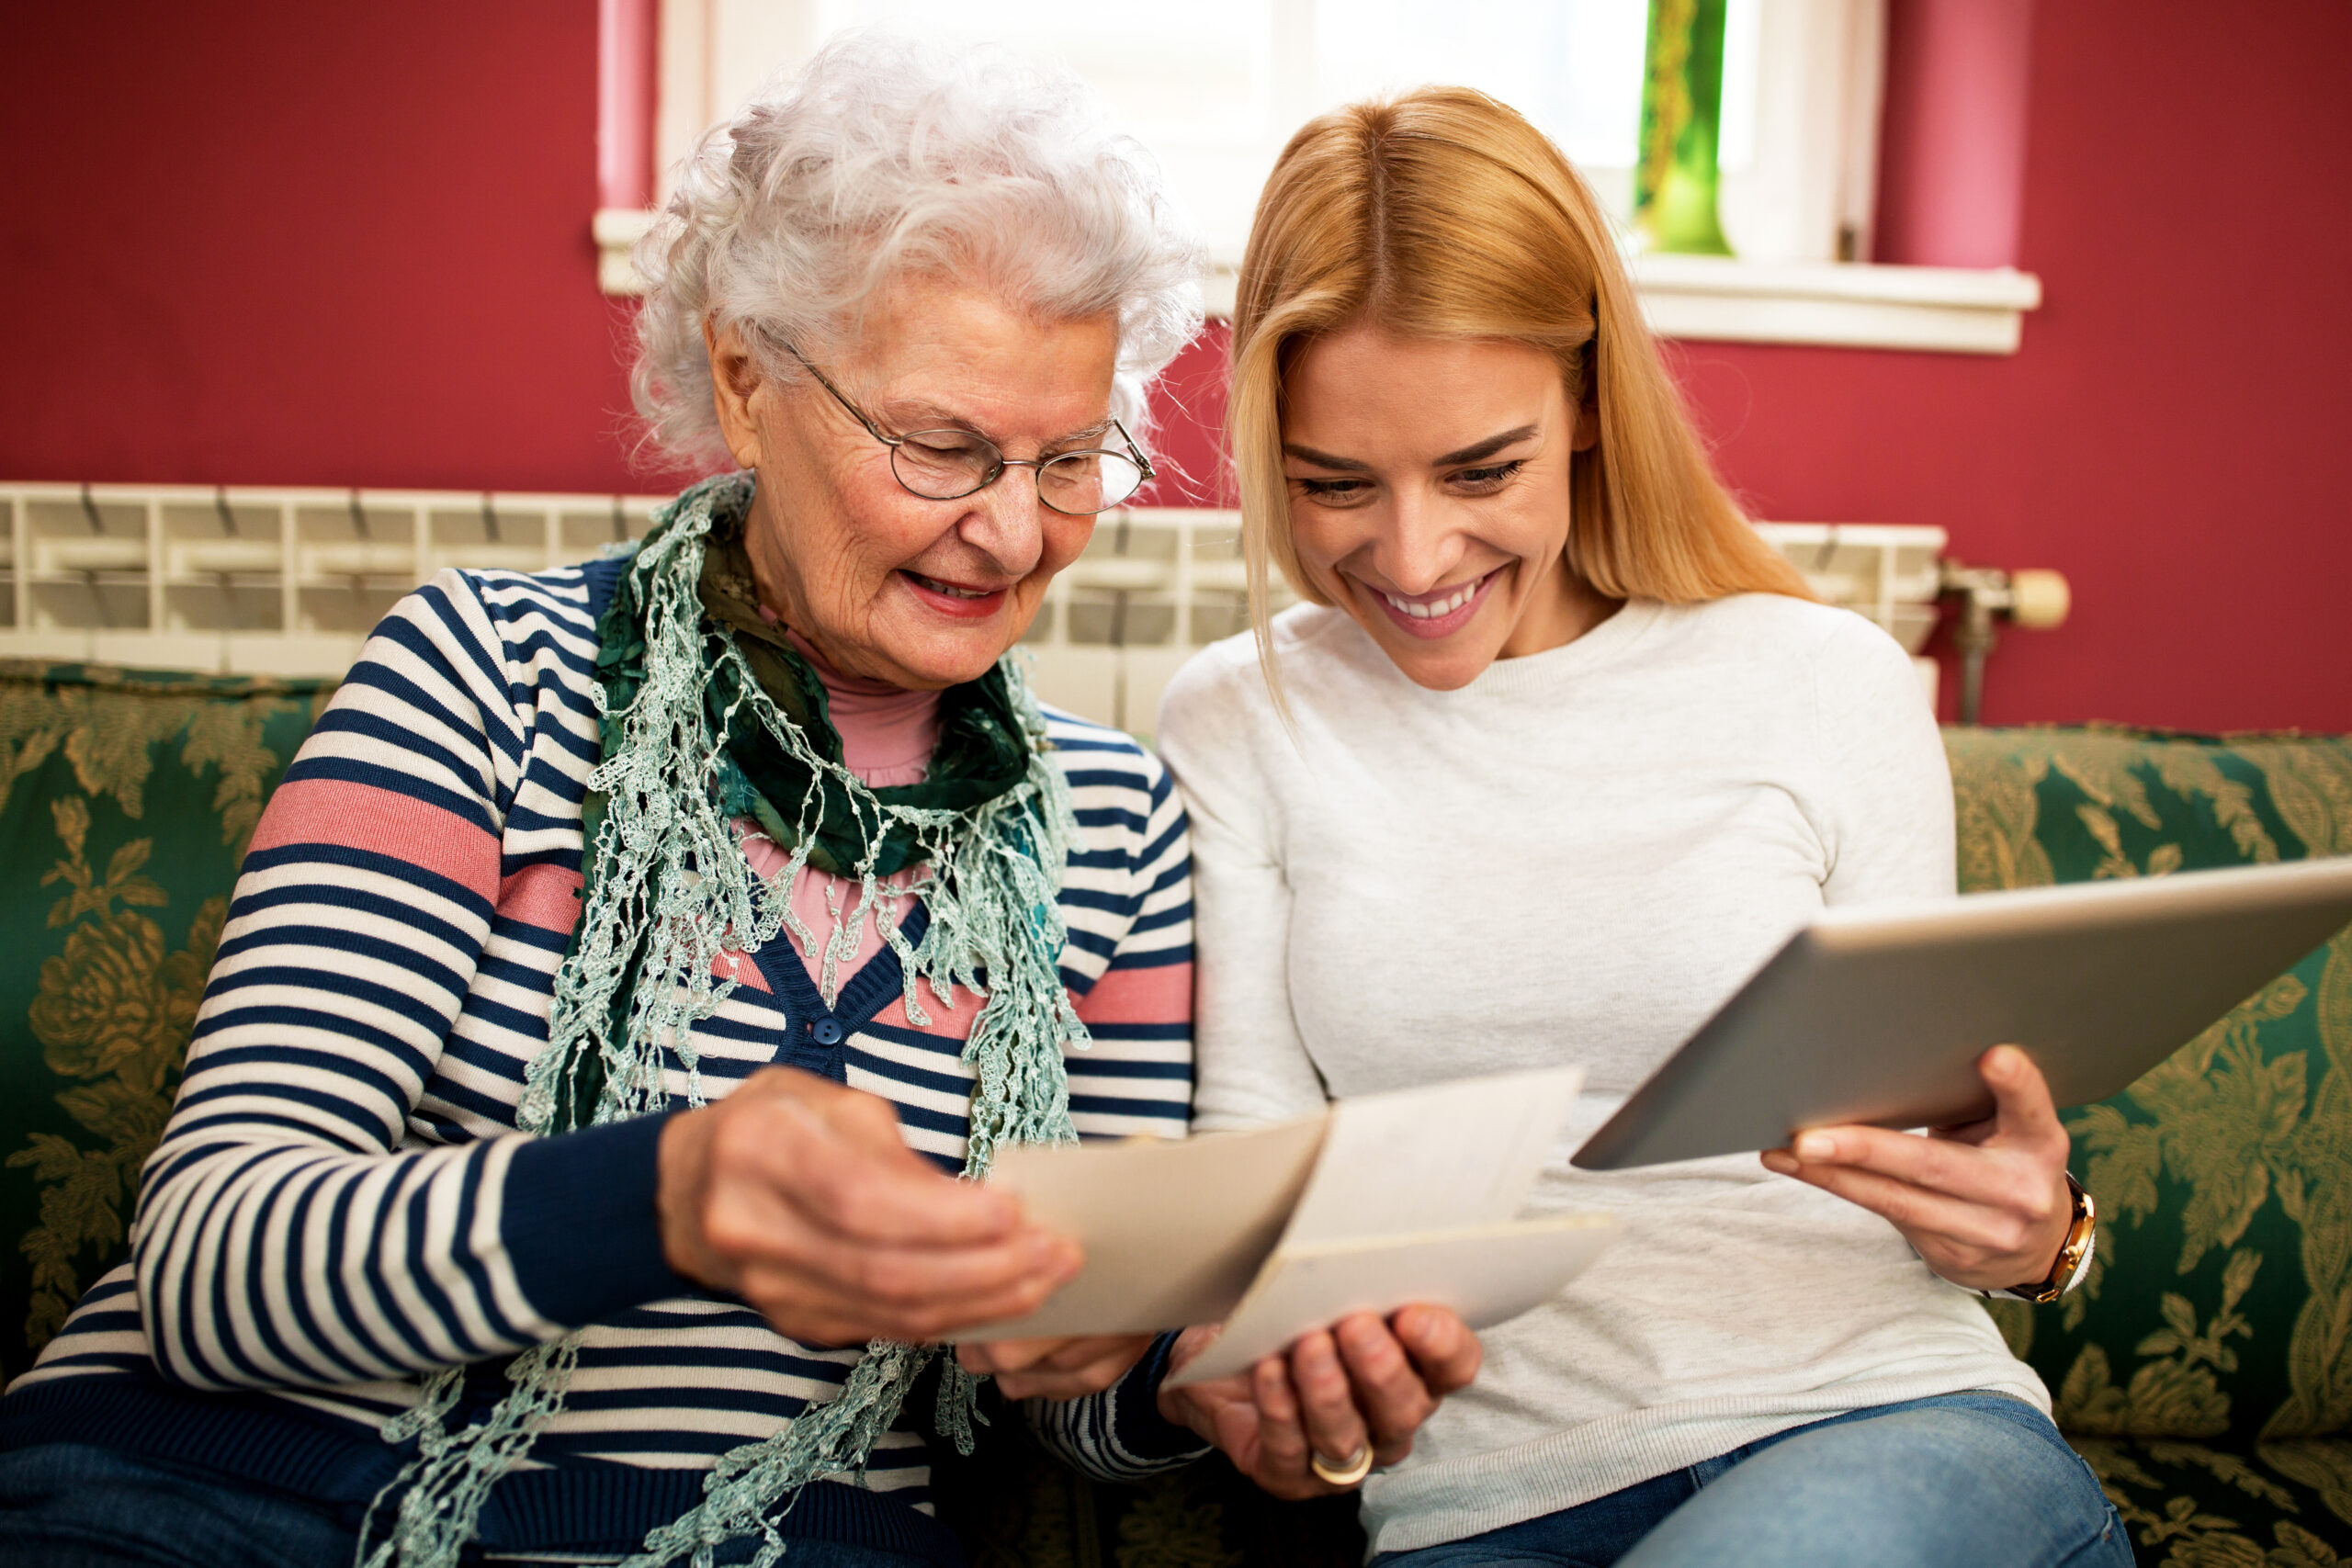 What to Expect When Visiting Loved Ones in a Post-COVID Era